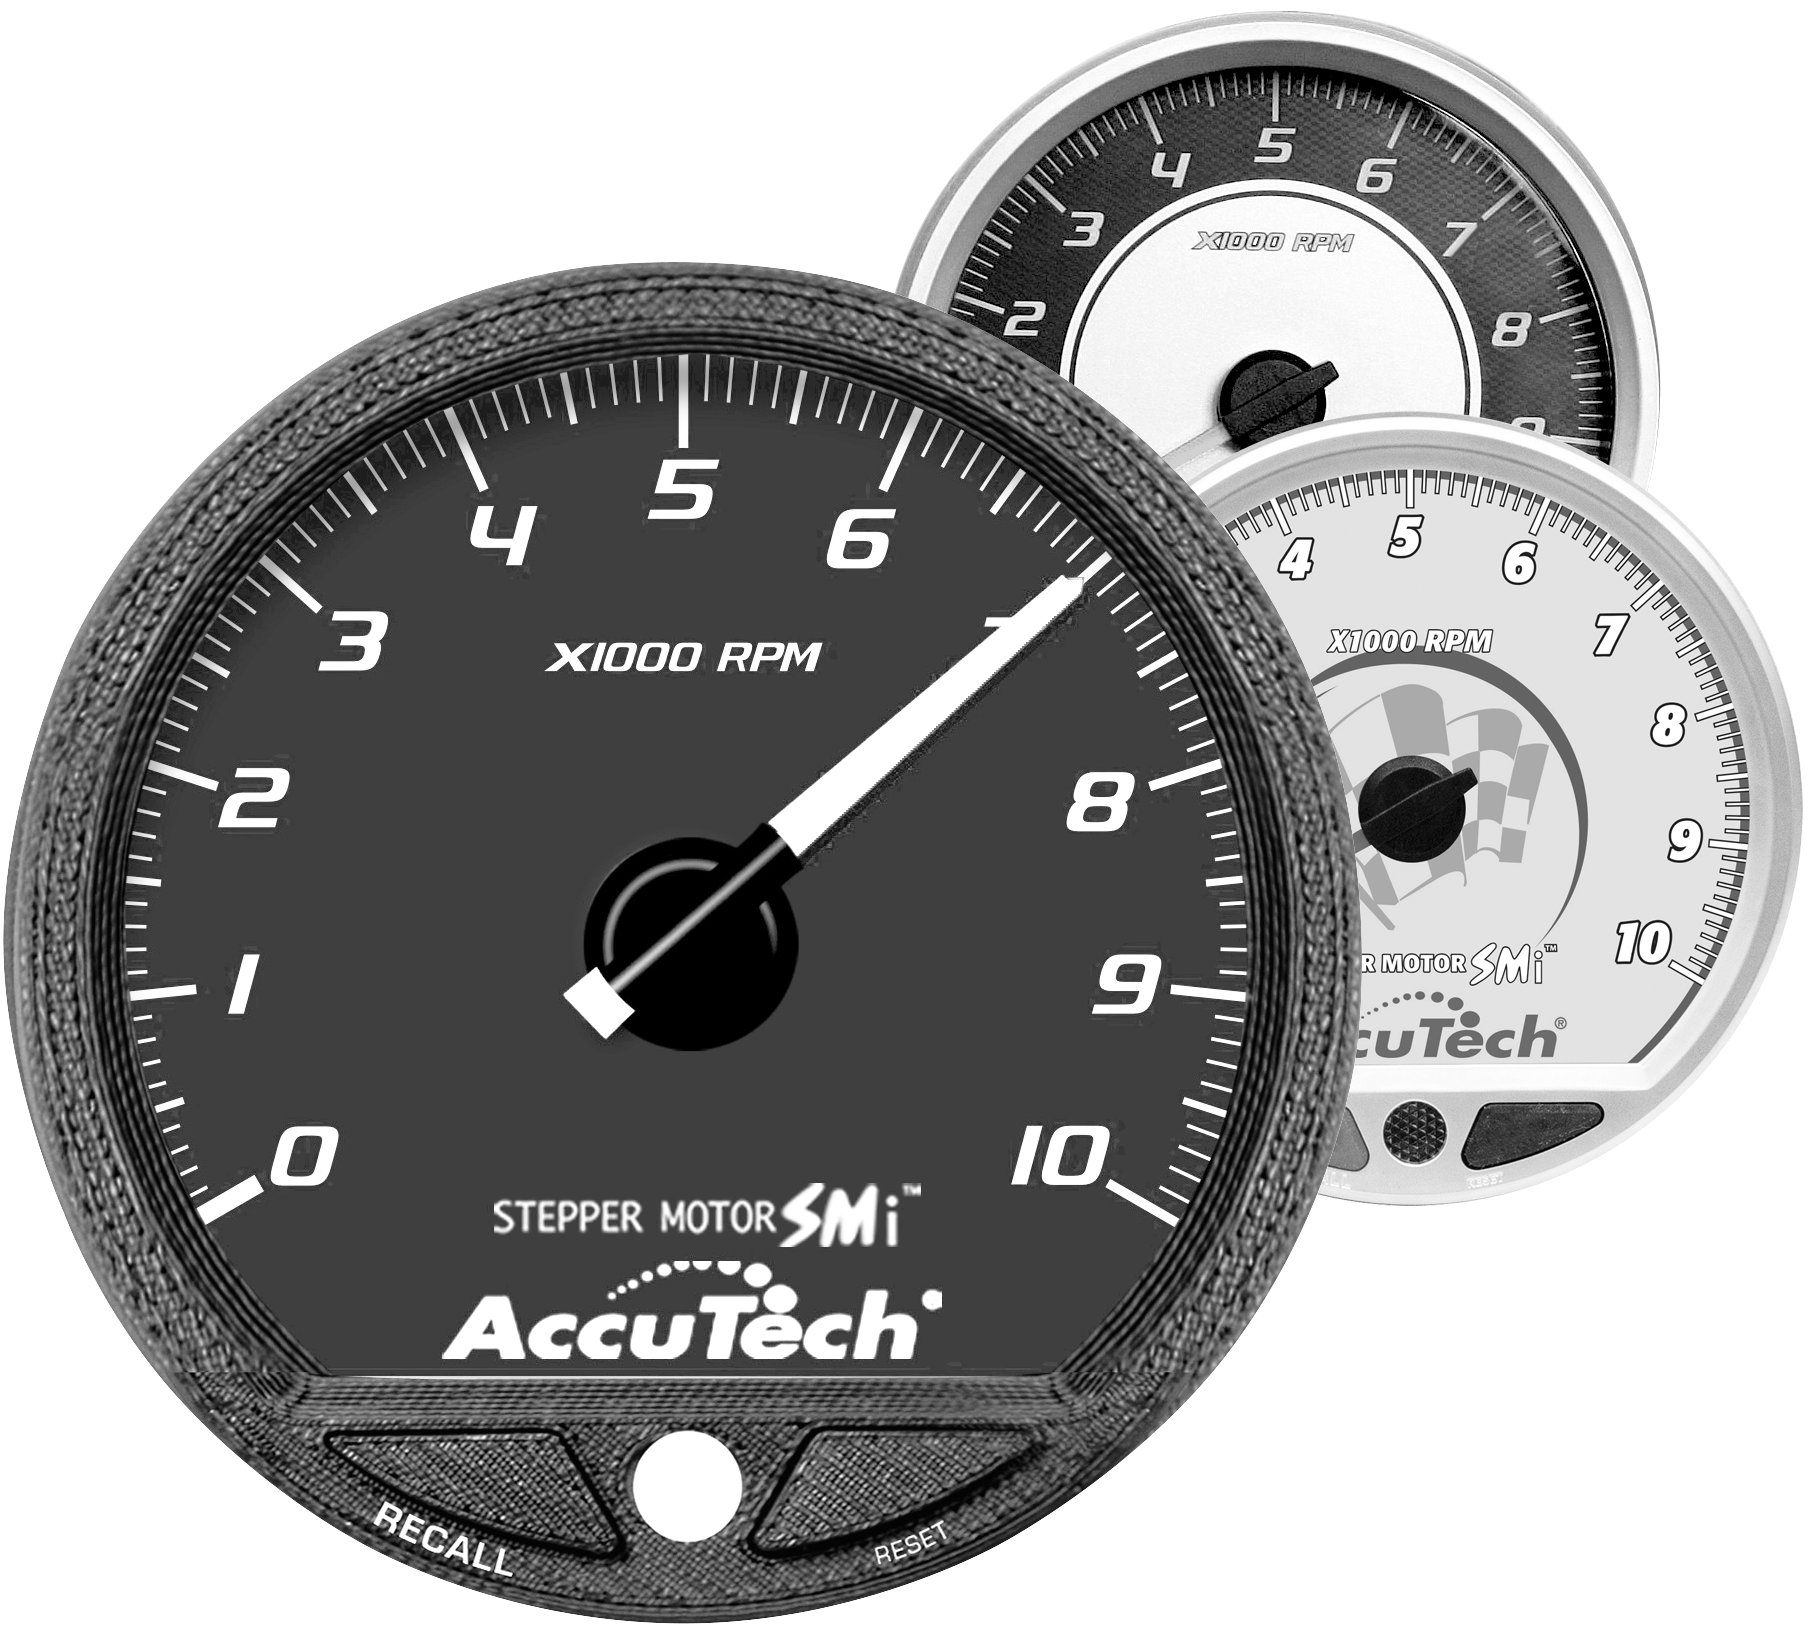 Accutech SMi tachometers